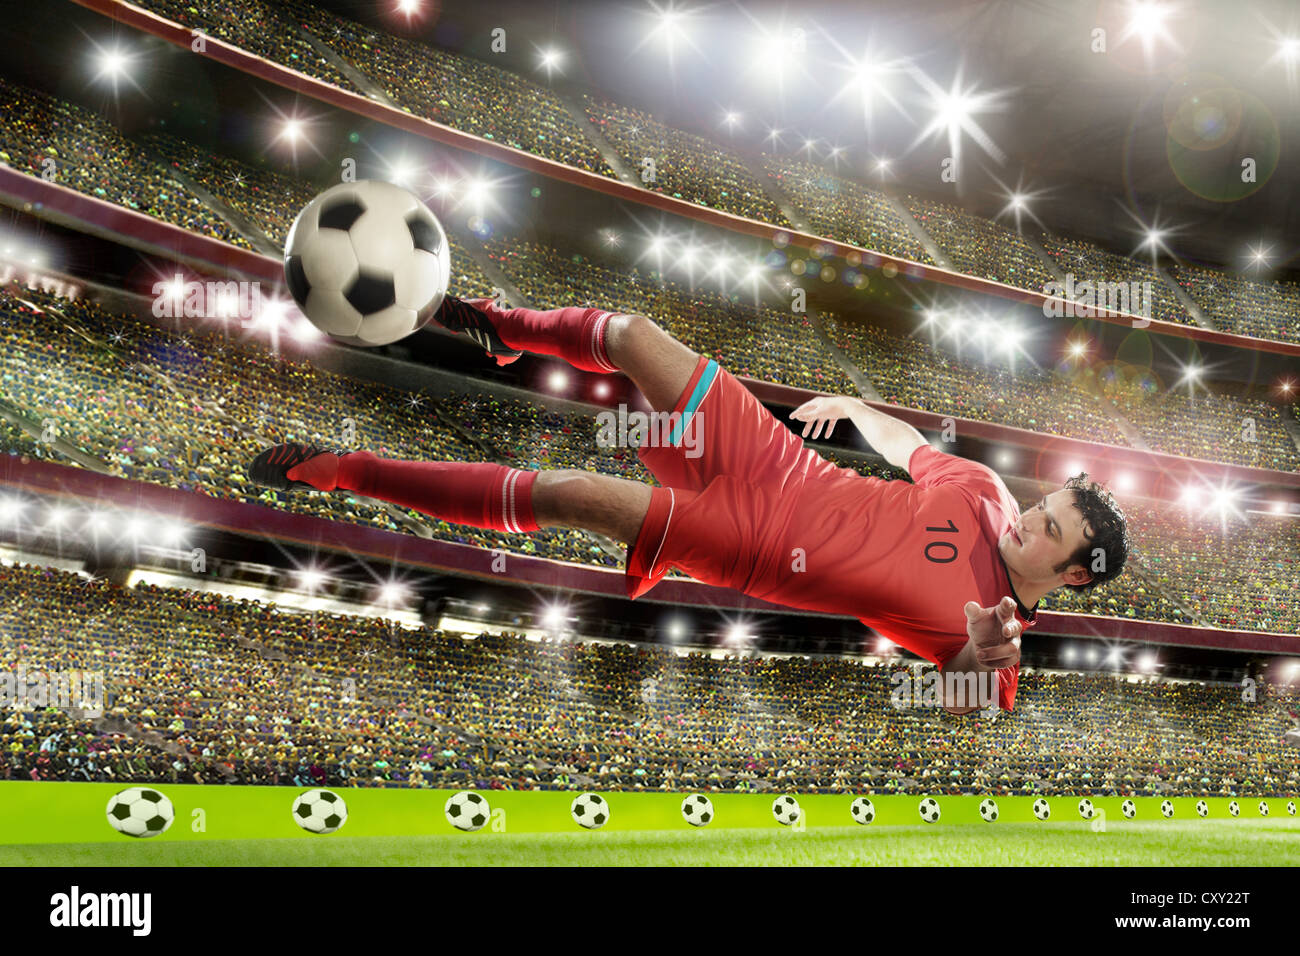 Soccer player jumping, kicking the ball, soccer stadium - Stock Image